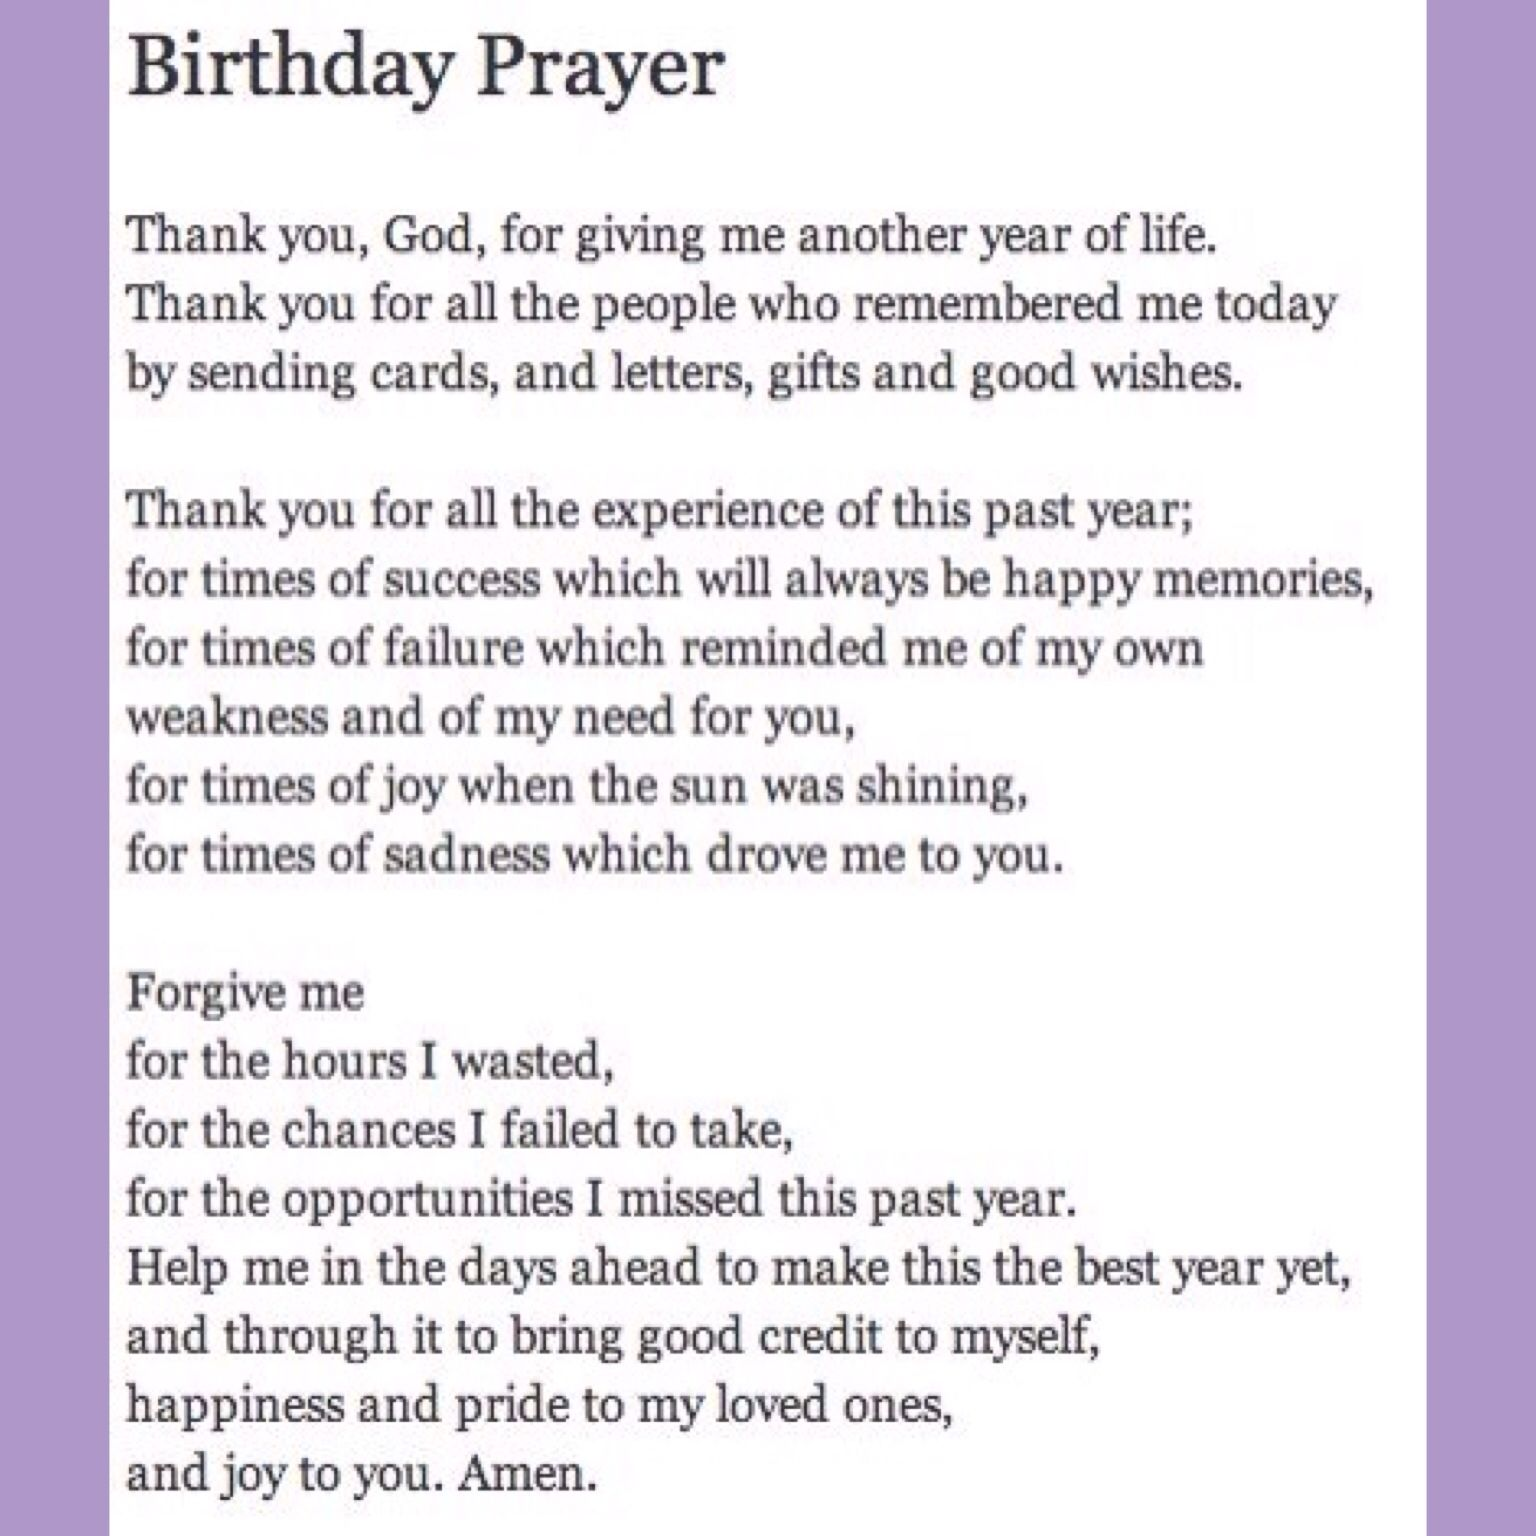 Super Blessed To Be Alive Another Year With Images Birthday Prayer Funny Birthday Cards Online Alyptdamsfinfo